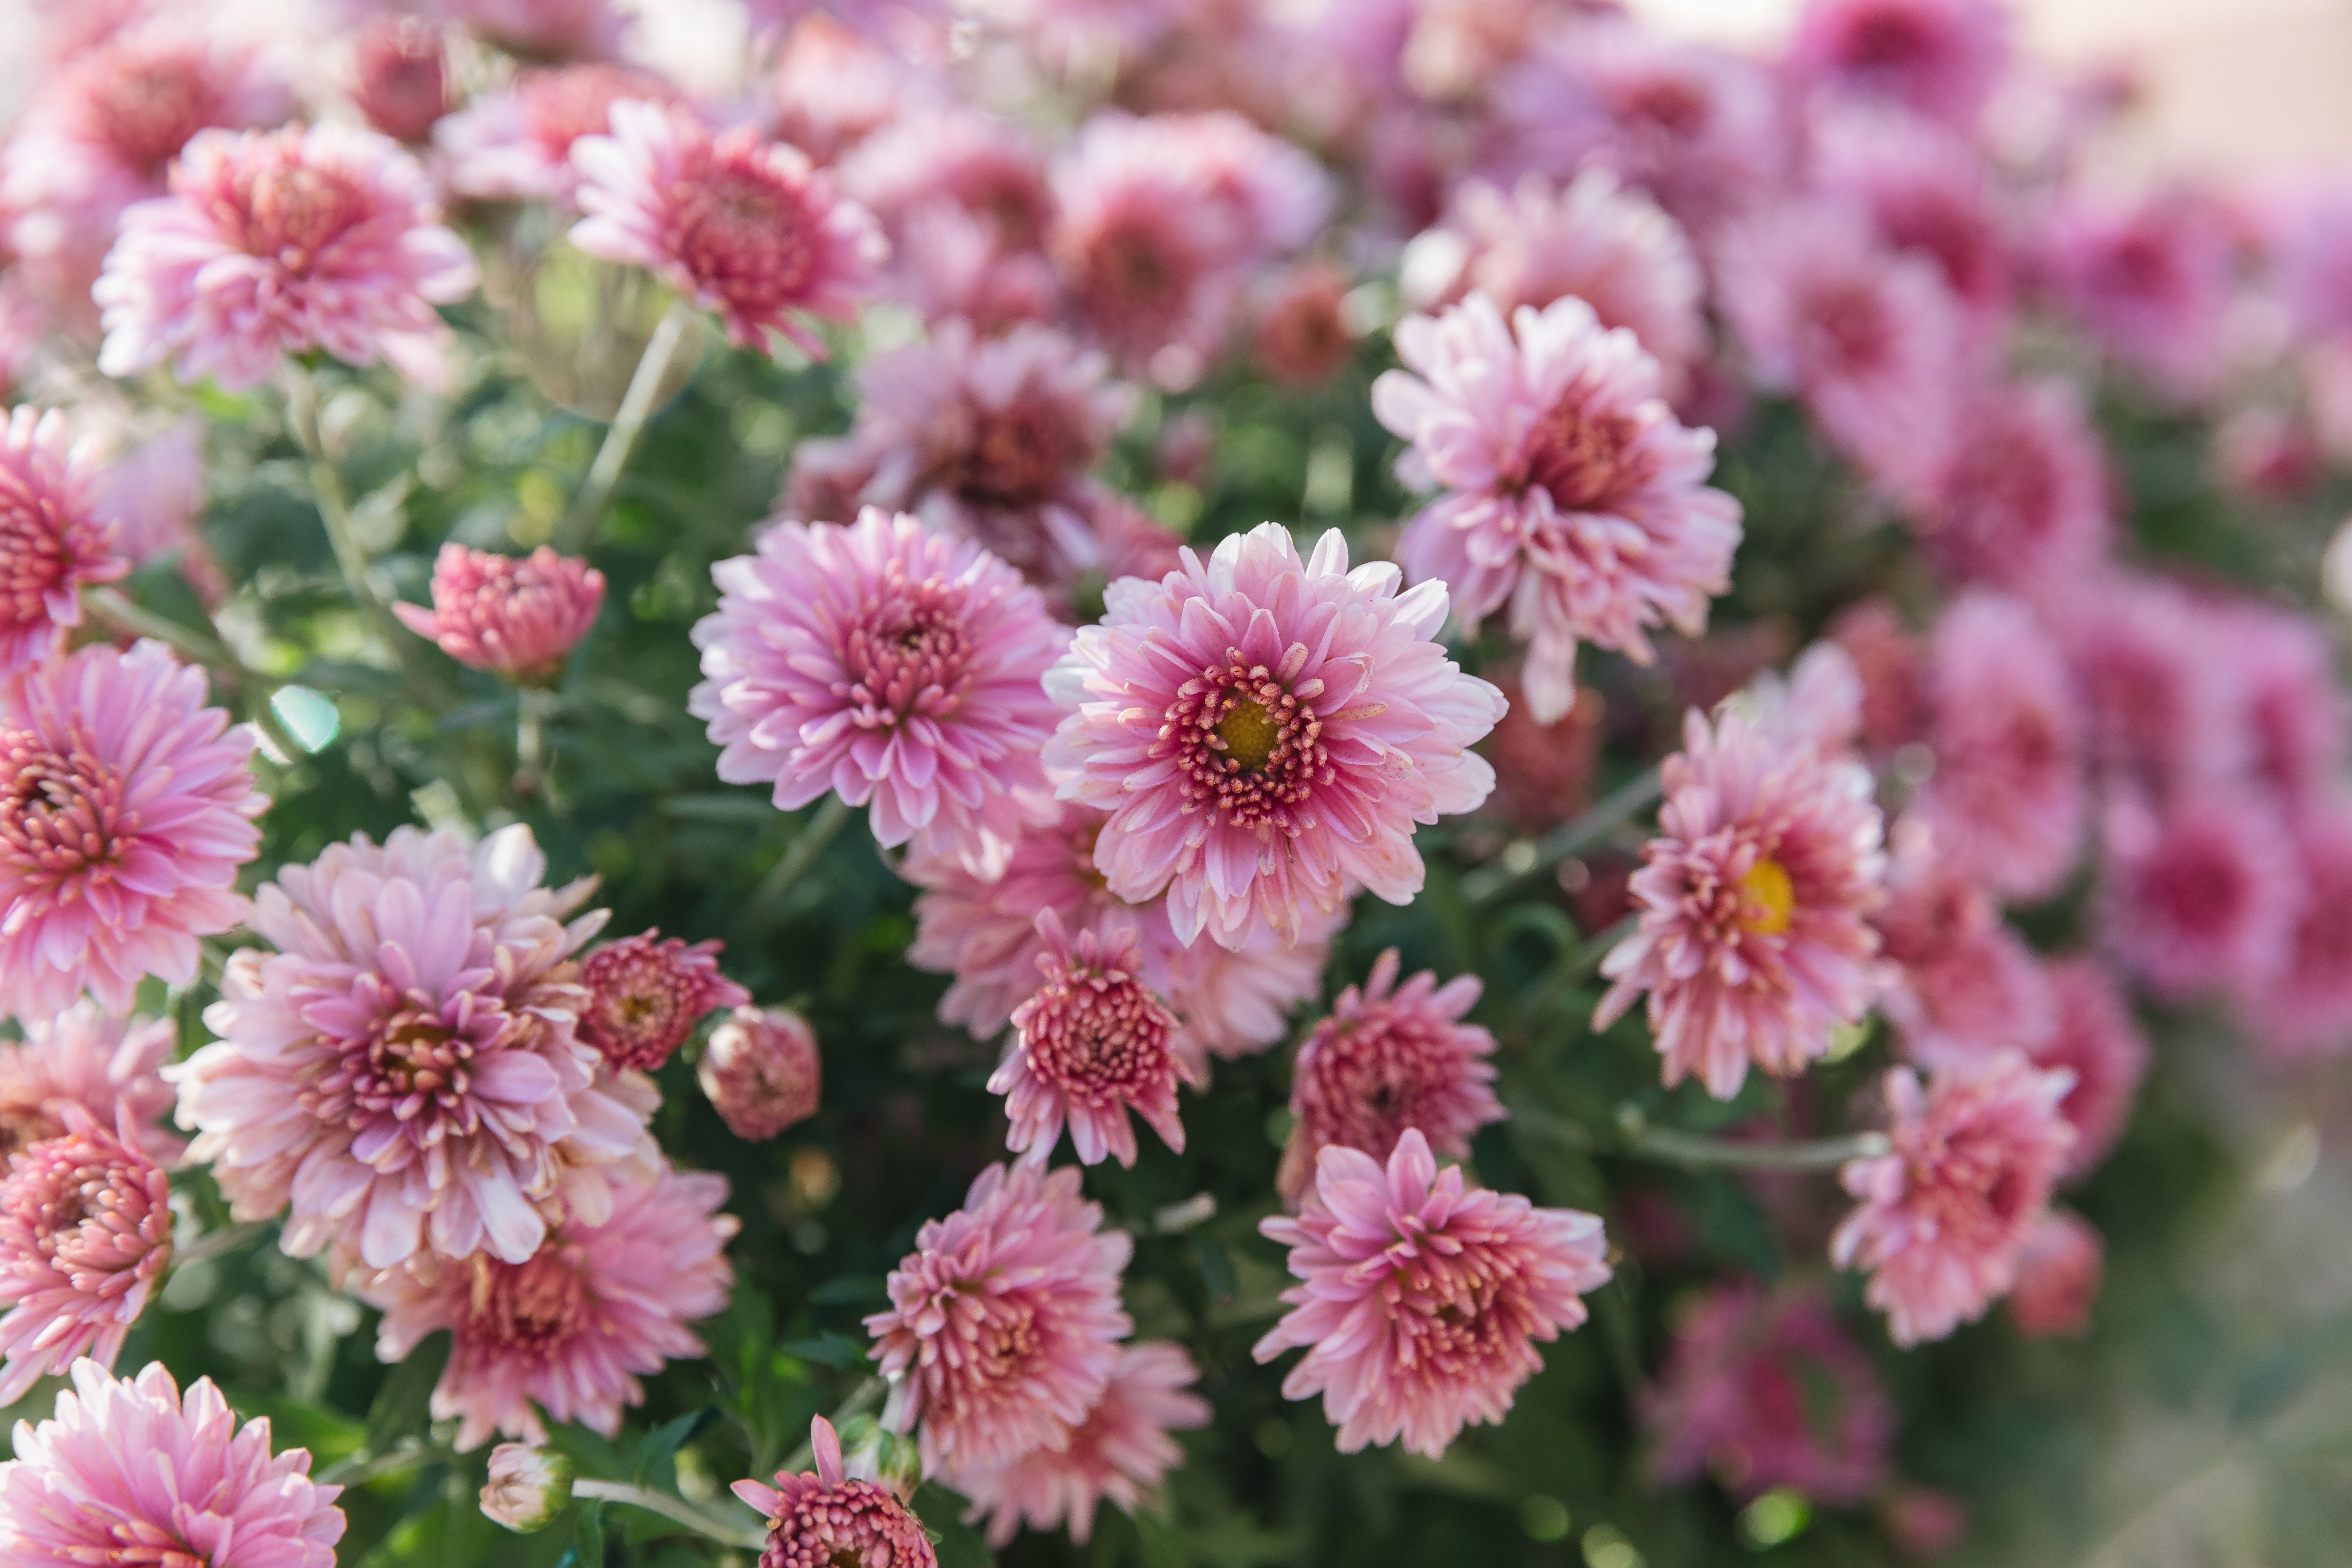 How To Grow And Care For Hardy Chrysanthemums Garden Mums In 2020 Hardy Mums Garden Mum Flowers Perennials